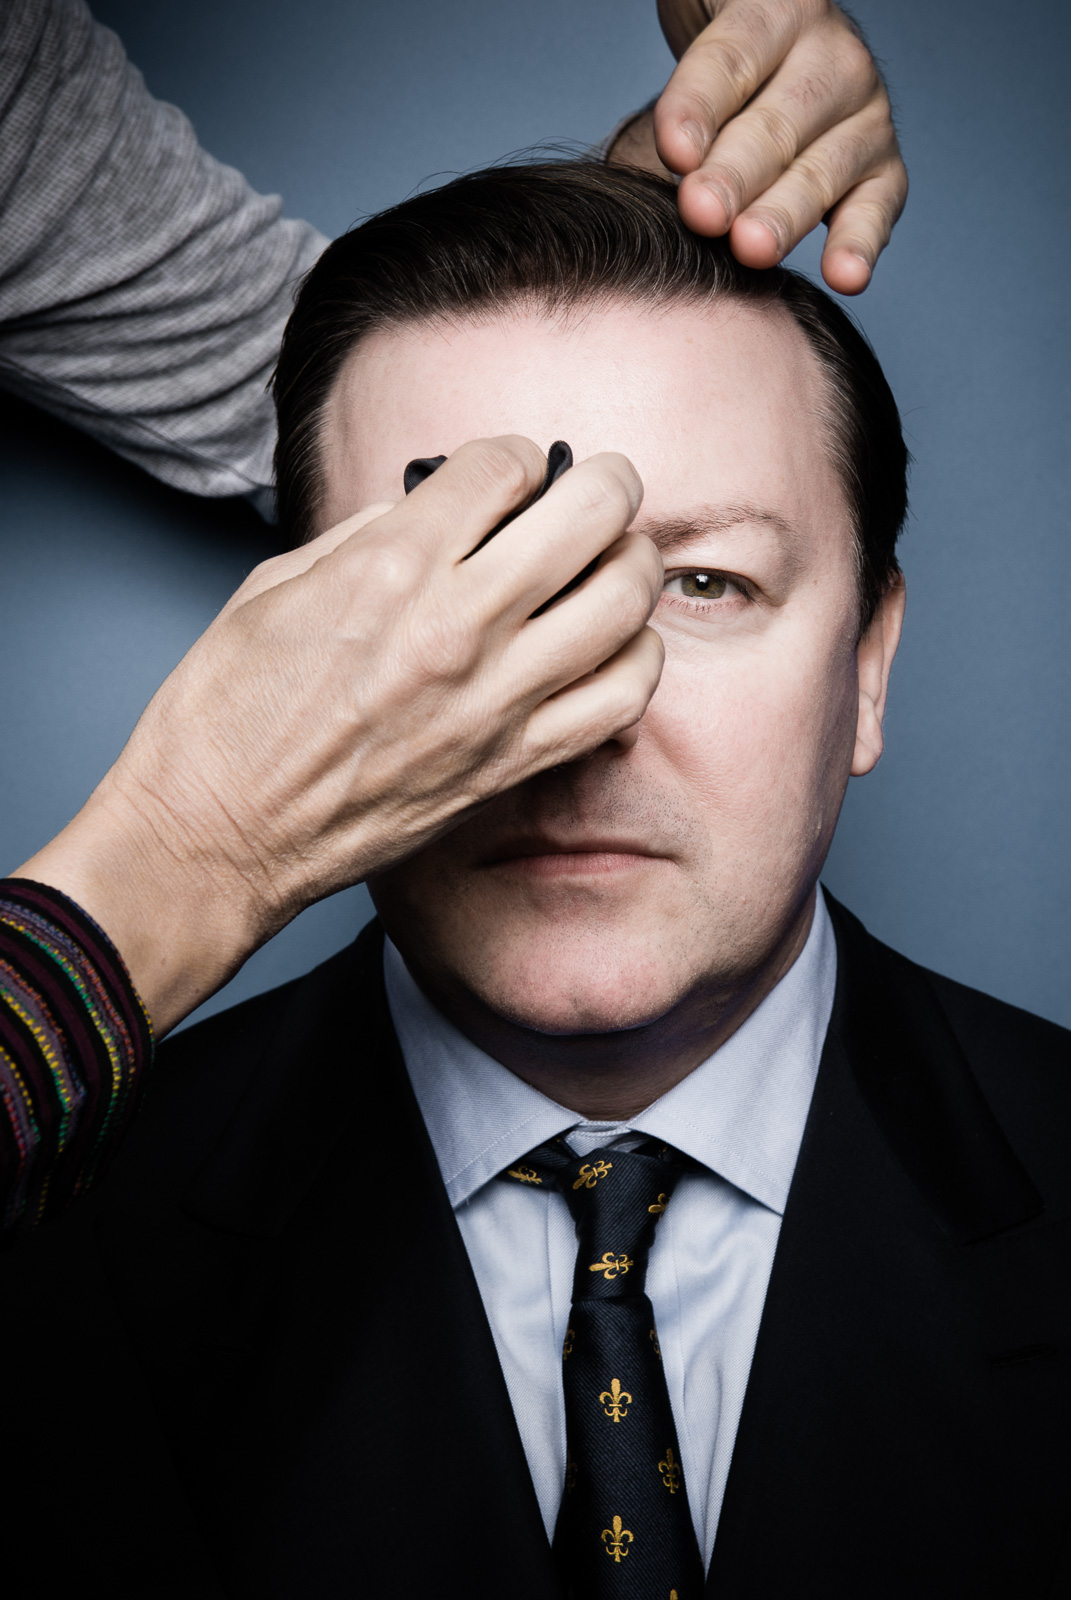 Ricky Gervais / Actor Comedian Writer